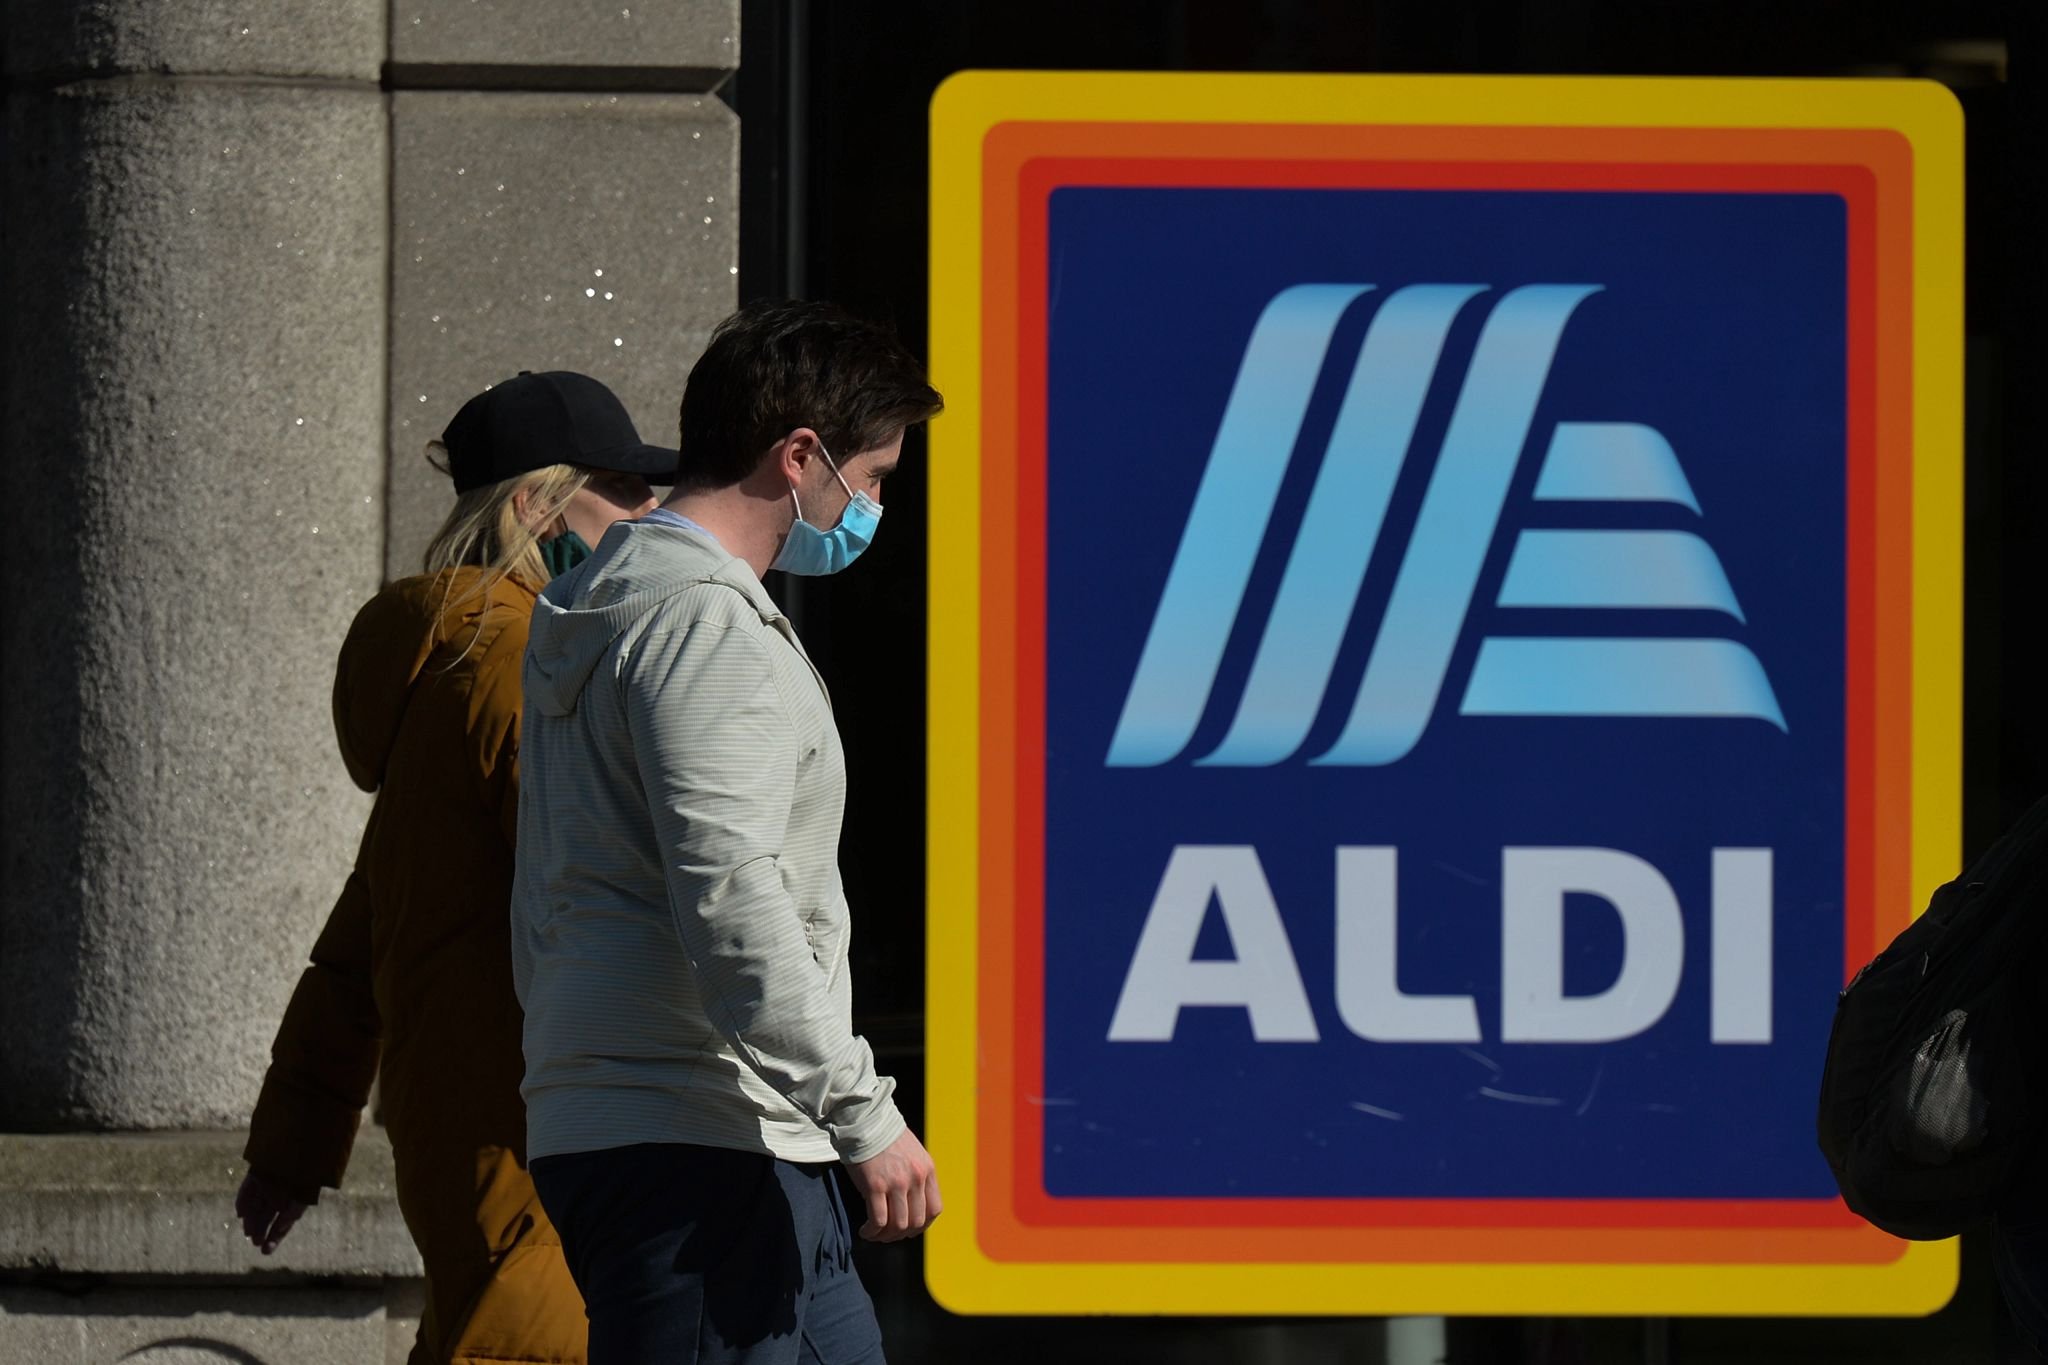 Aldi, with grocery stores across the country including in Chicago, above, has worked on expanding its U.S. footprint in a strategy that's made it a popular target among investors. (Getty Images)